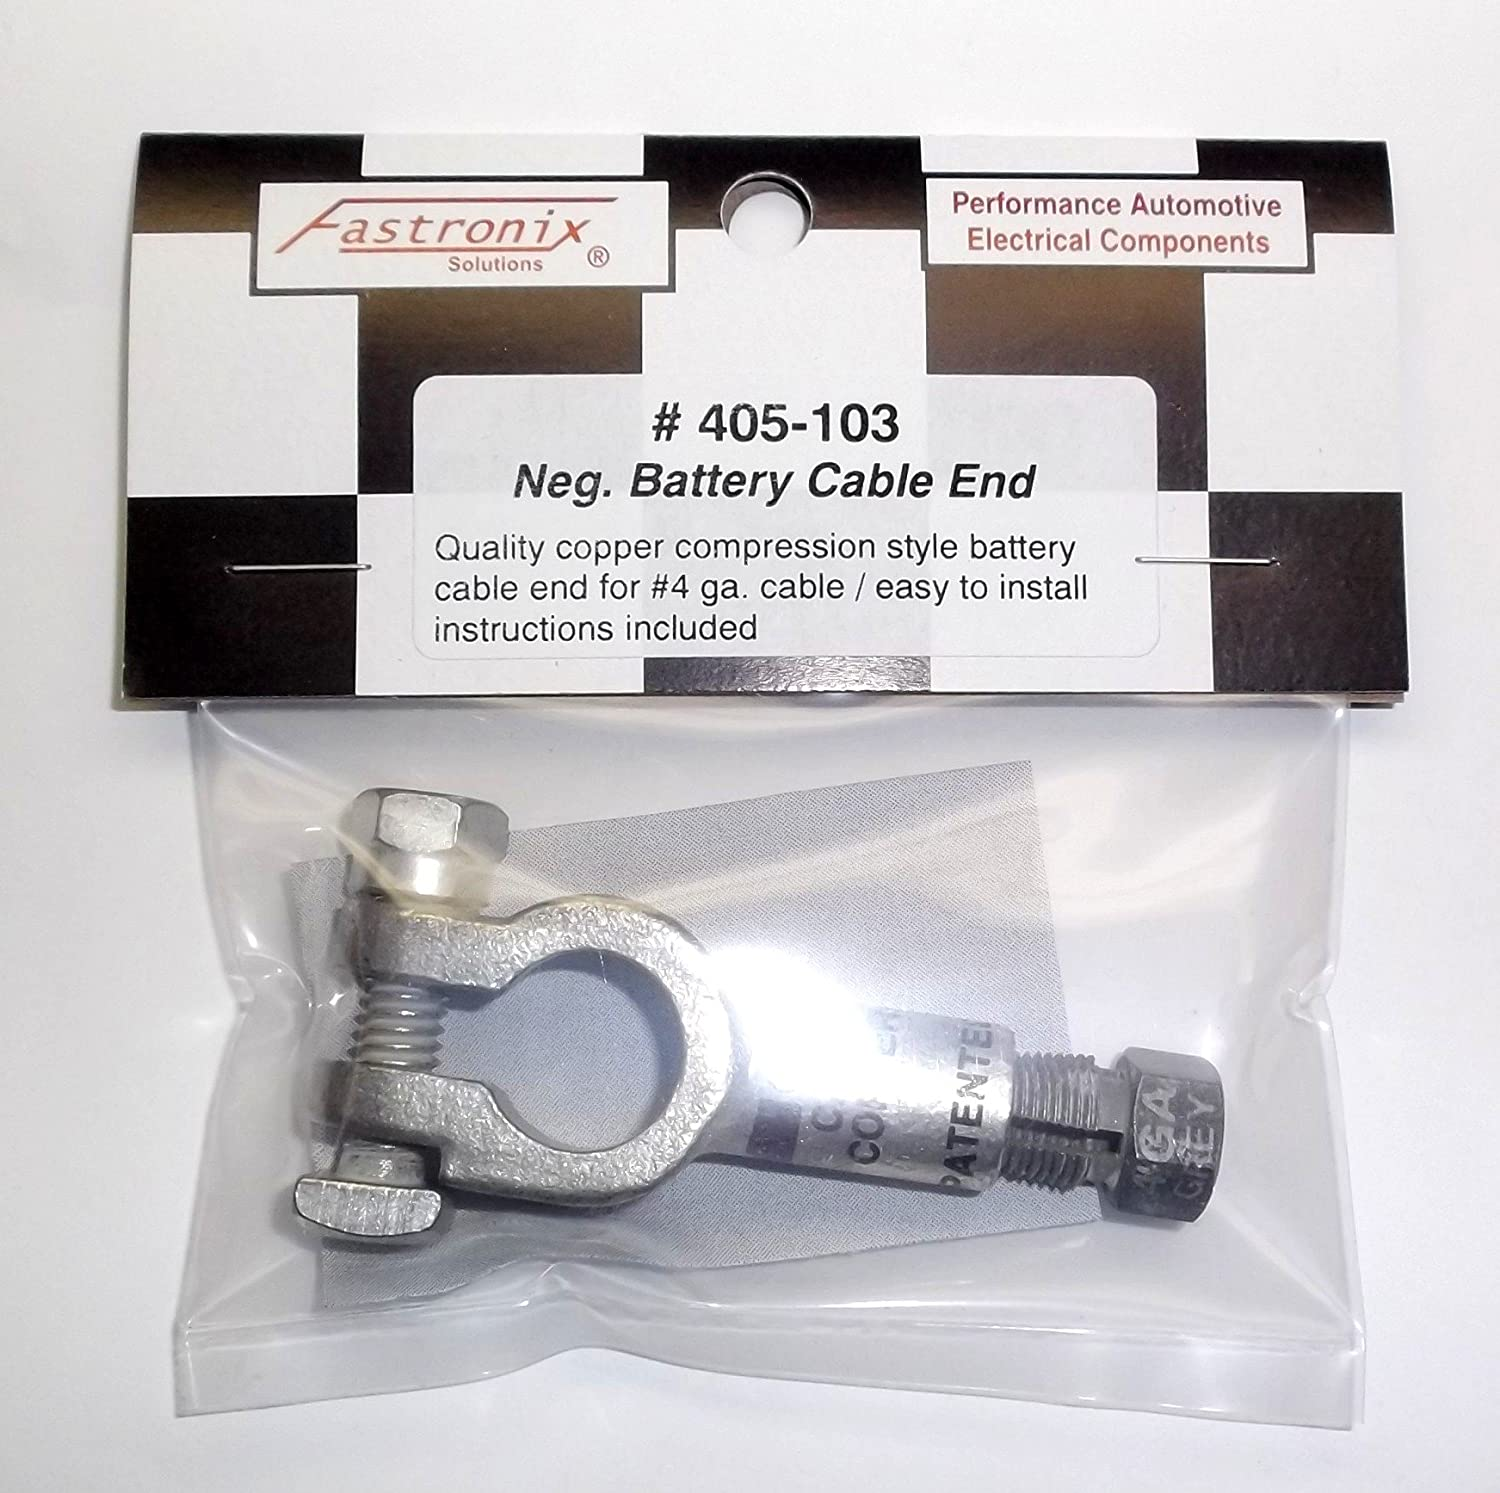 Fastronix Top Post Battery Cable Compression Terminal 4 Gauge Positive